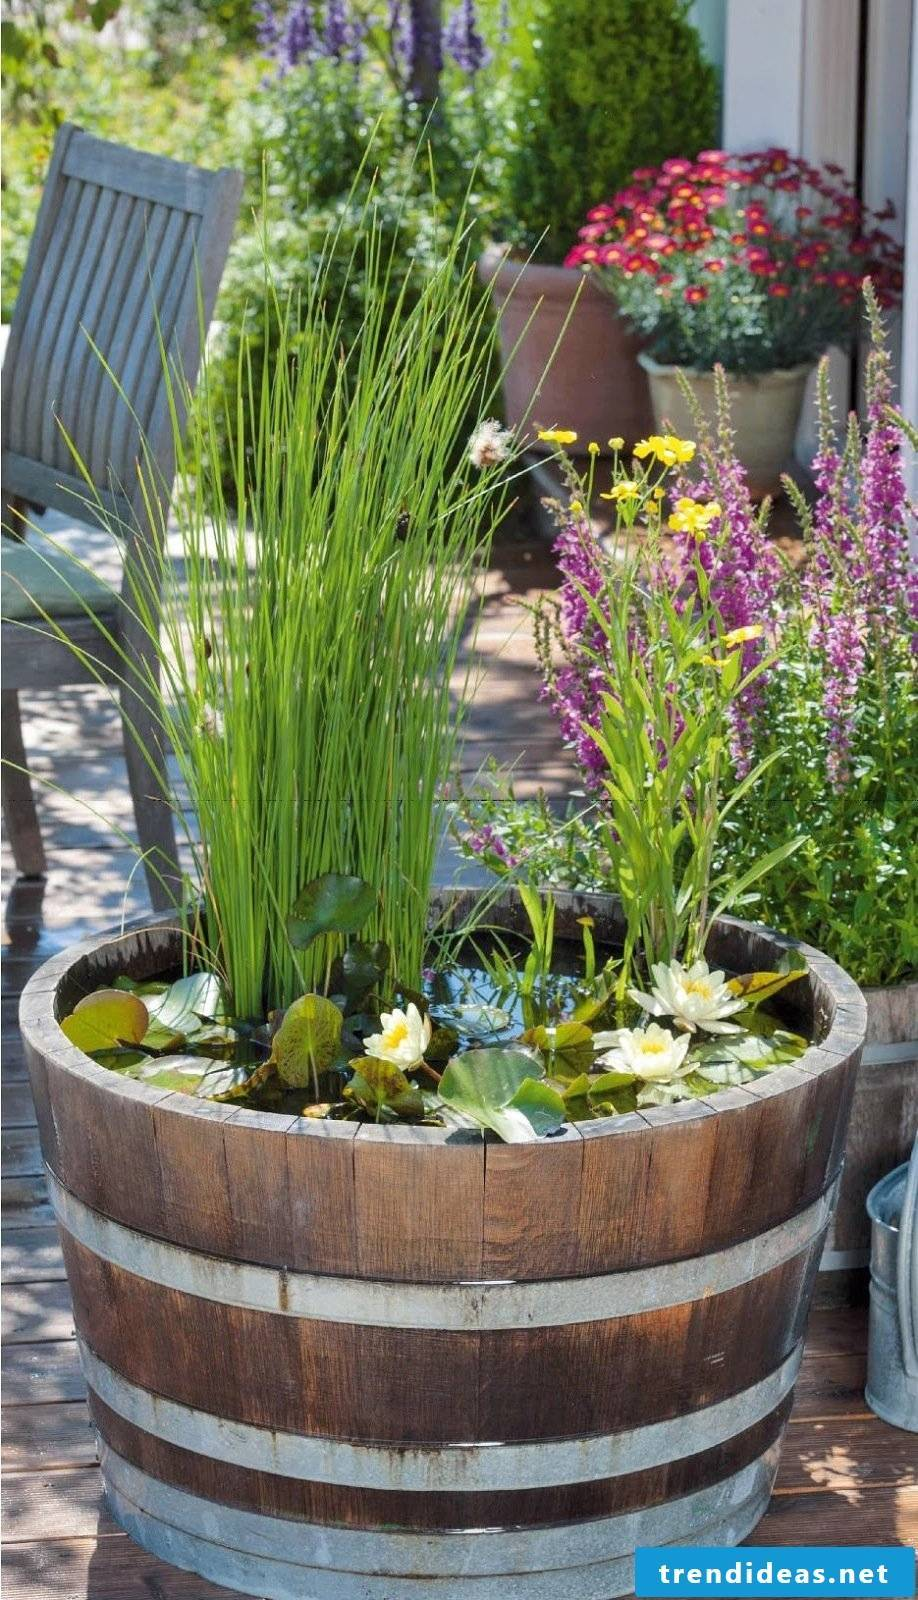 DIY mini-pond in the pot and many more great garden ideas for little money can be found here